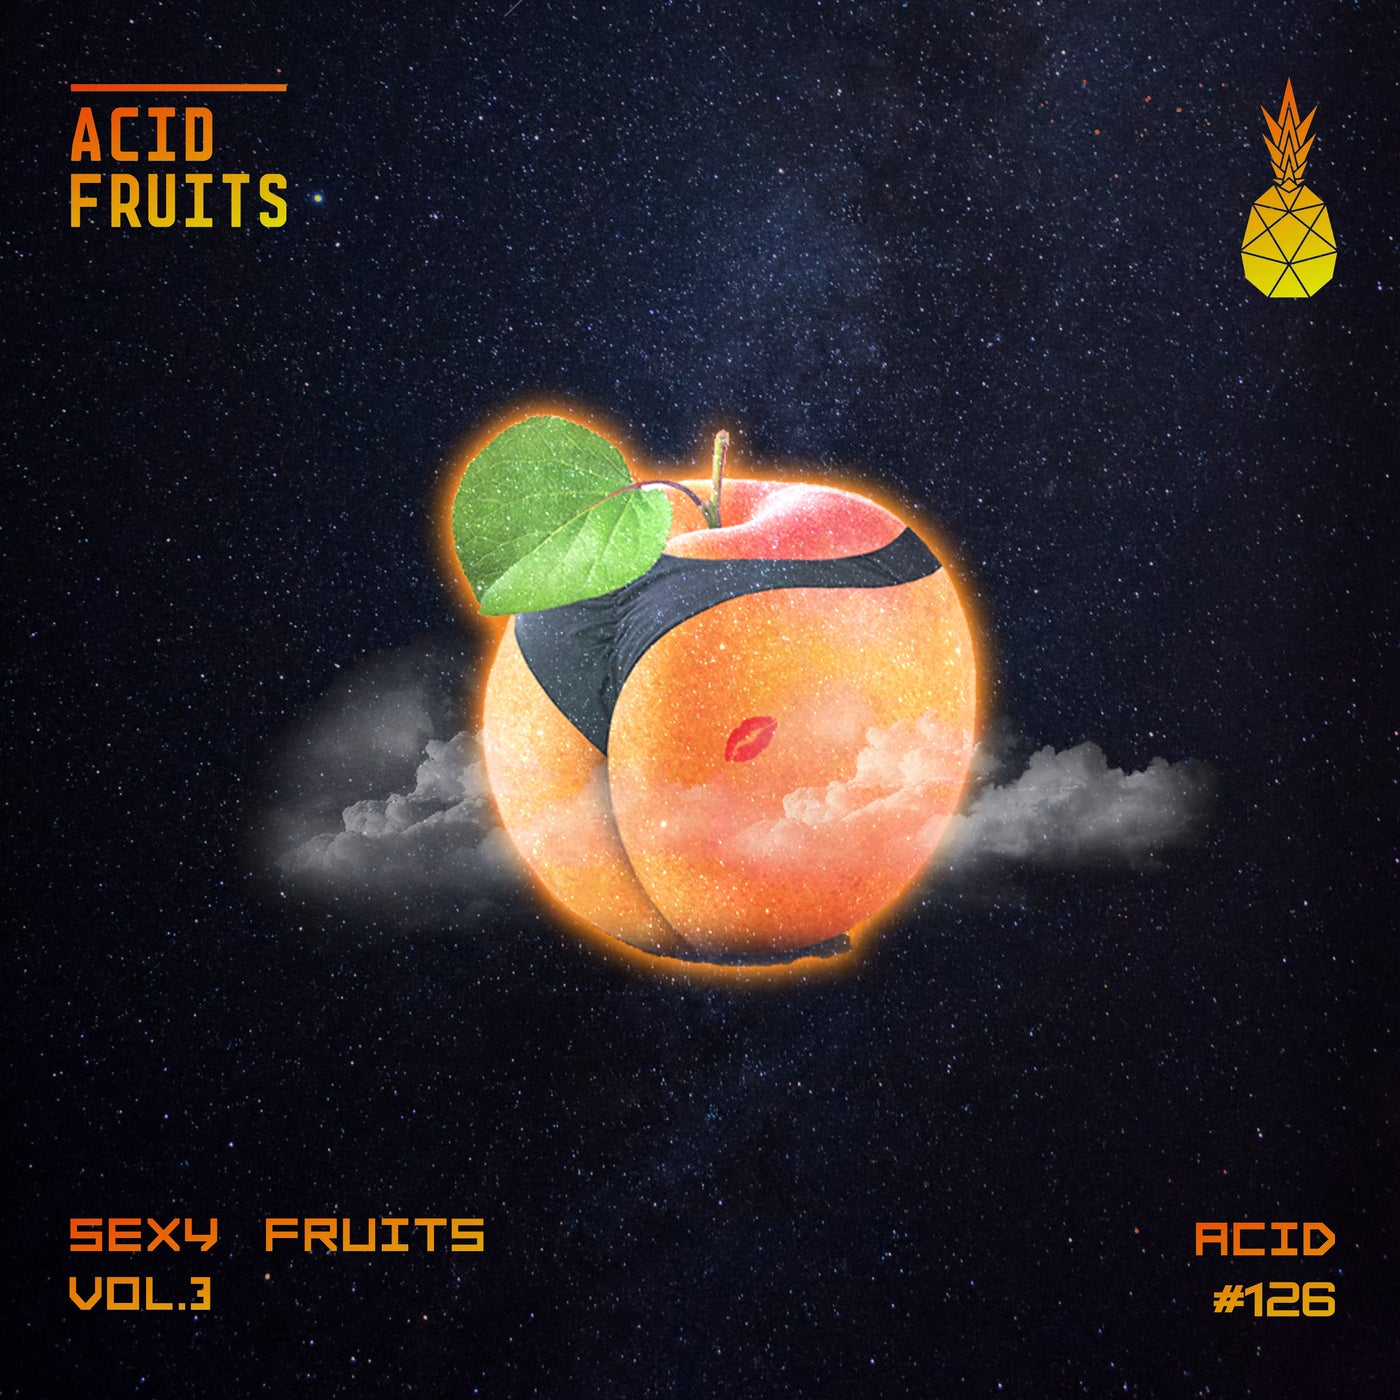 Various Performers - Sexy Fruits Vol.3 (2021)